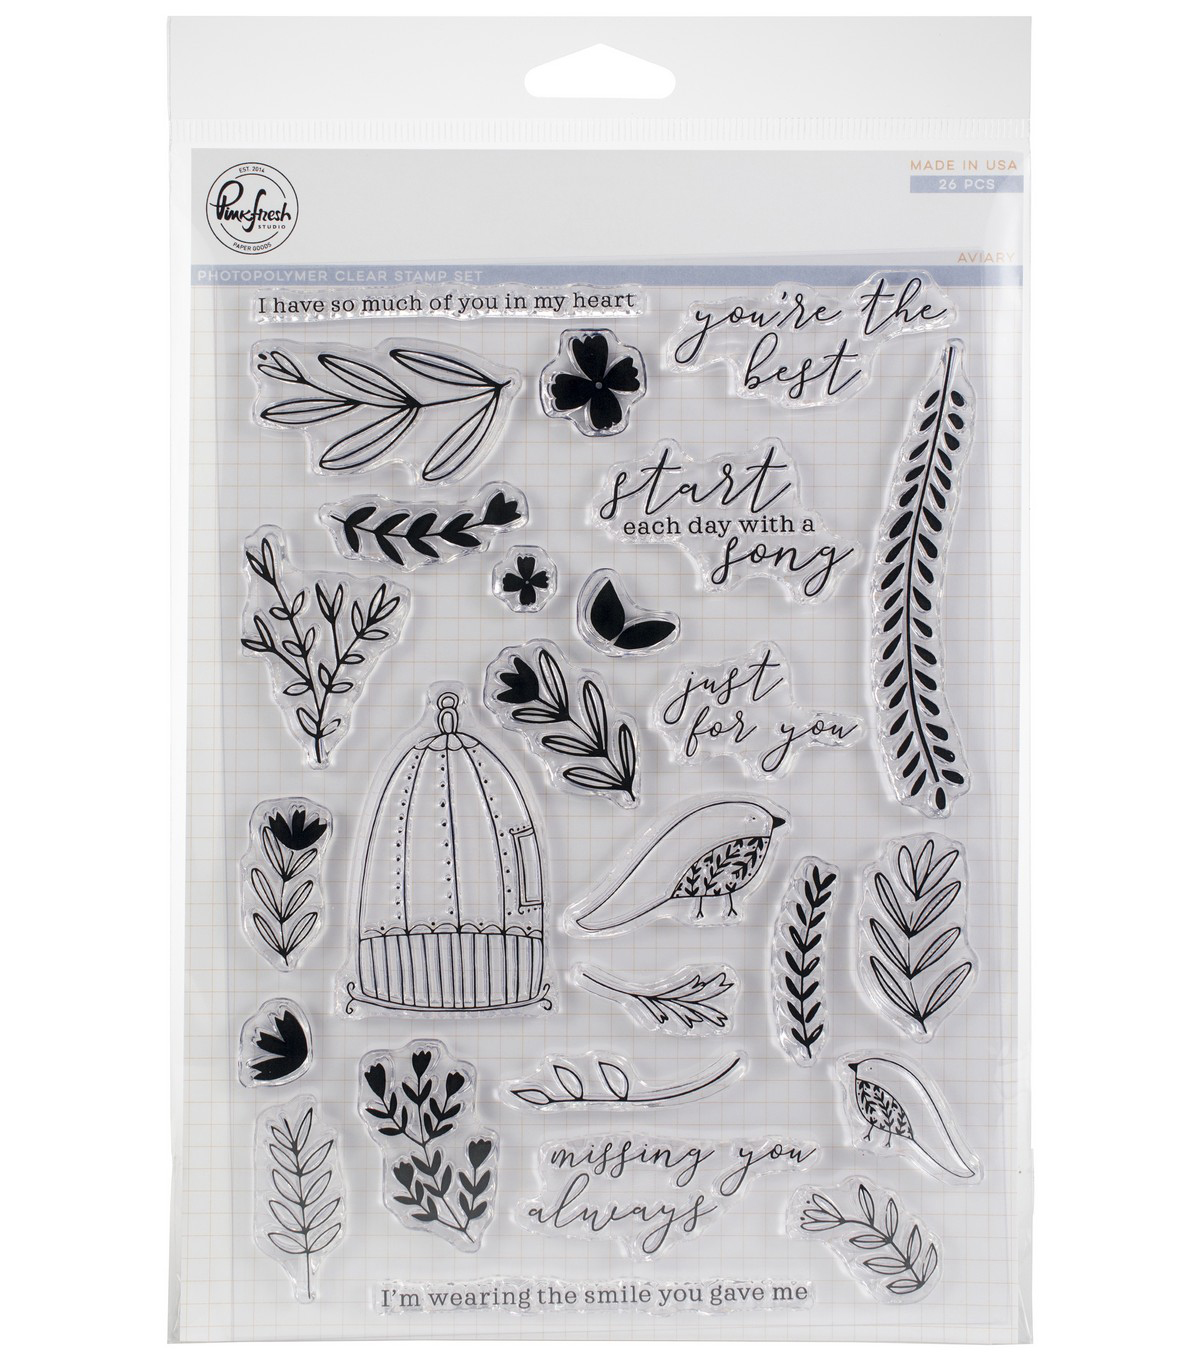 Pinkfresh Studio 26 pk Photopolymer Clear Stamps-Aviary